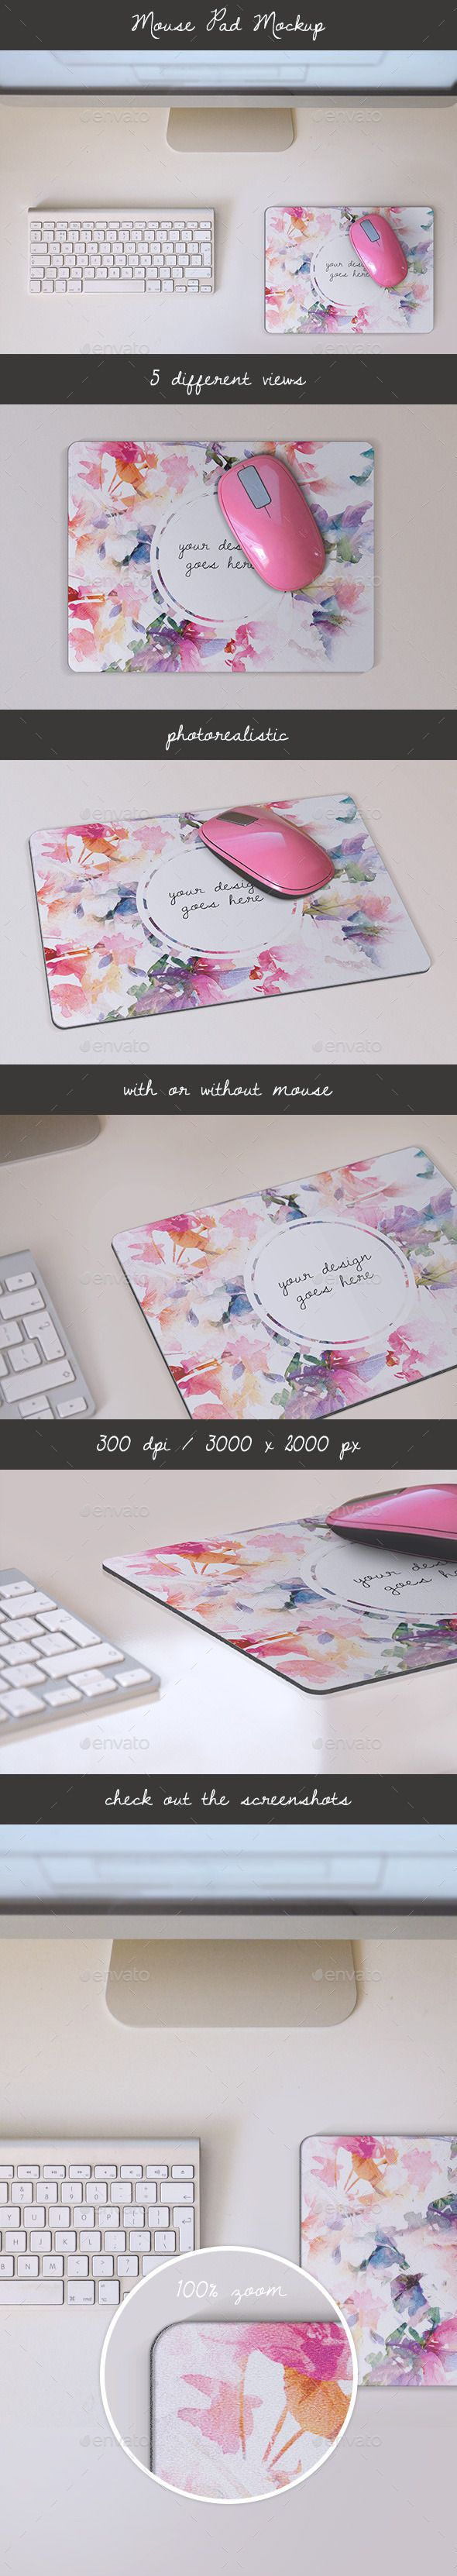 Photorealistic Mouse Pad Mockup. A set of elegant visual elements that will enhance your project to make it further visually appealing. The mockup set allows you to seamlessly place your design into a photo-realistic Mouse Pad Mockup.  - 1 PSD file with 5 different views, - Smart Objects - 3000×2000 px - 300 DPI,  - detailed,  - you can easily turn on/off visibility of the mouse , - perfect to present your mouse pad design.